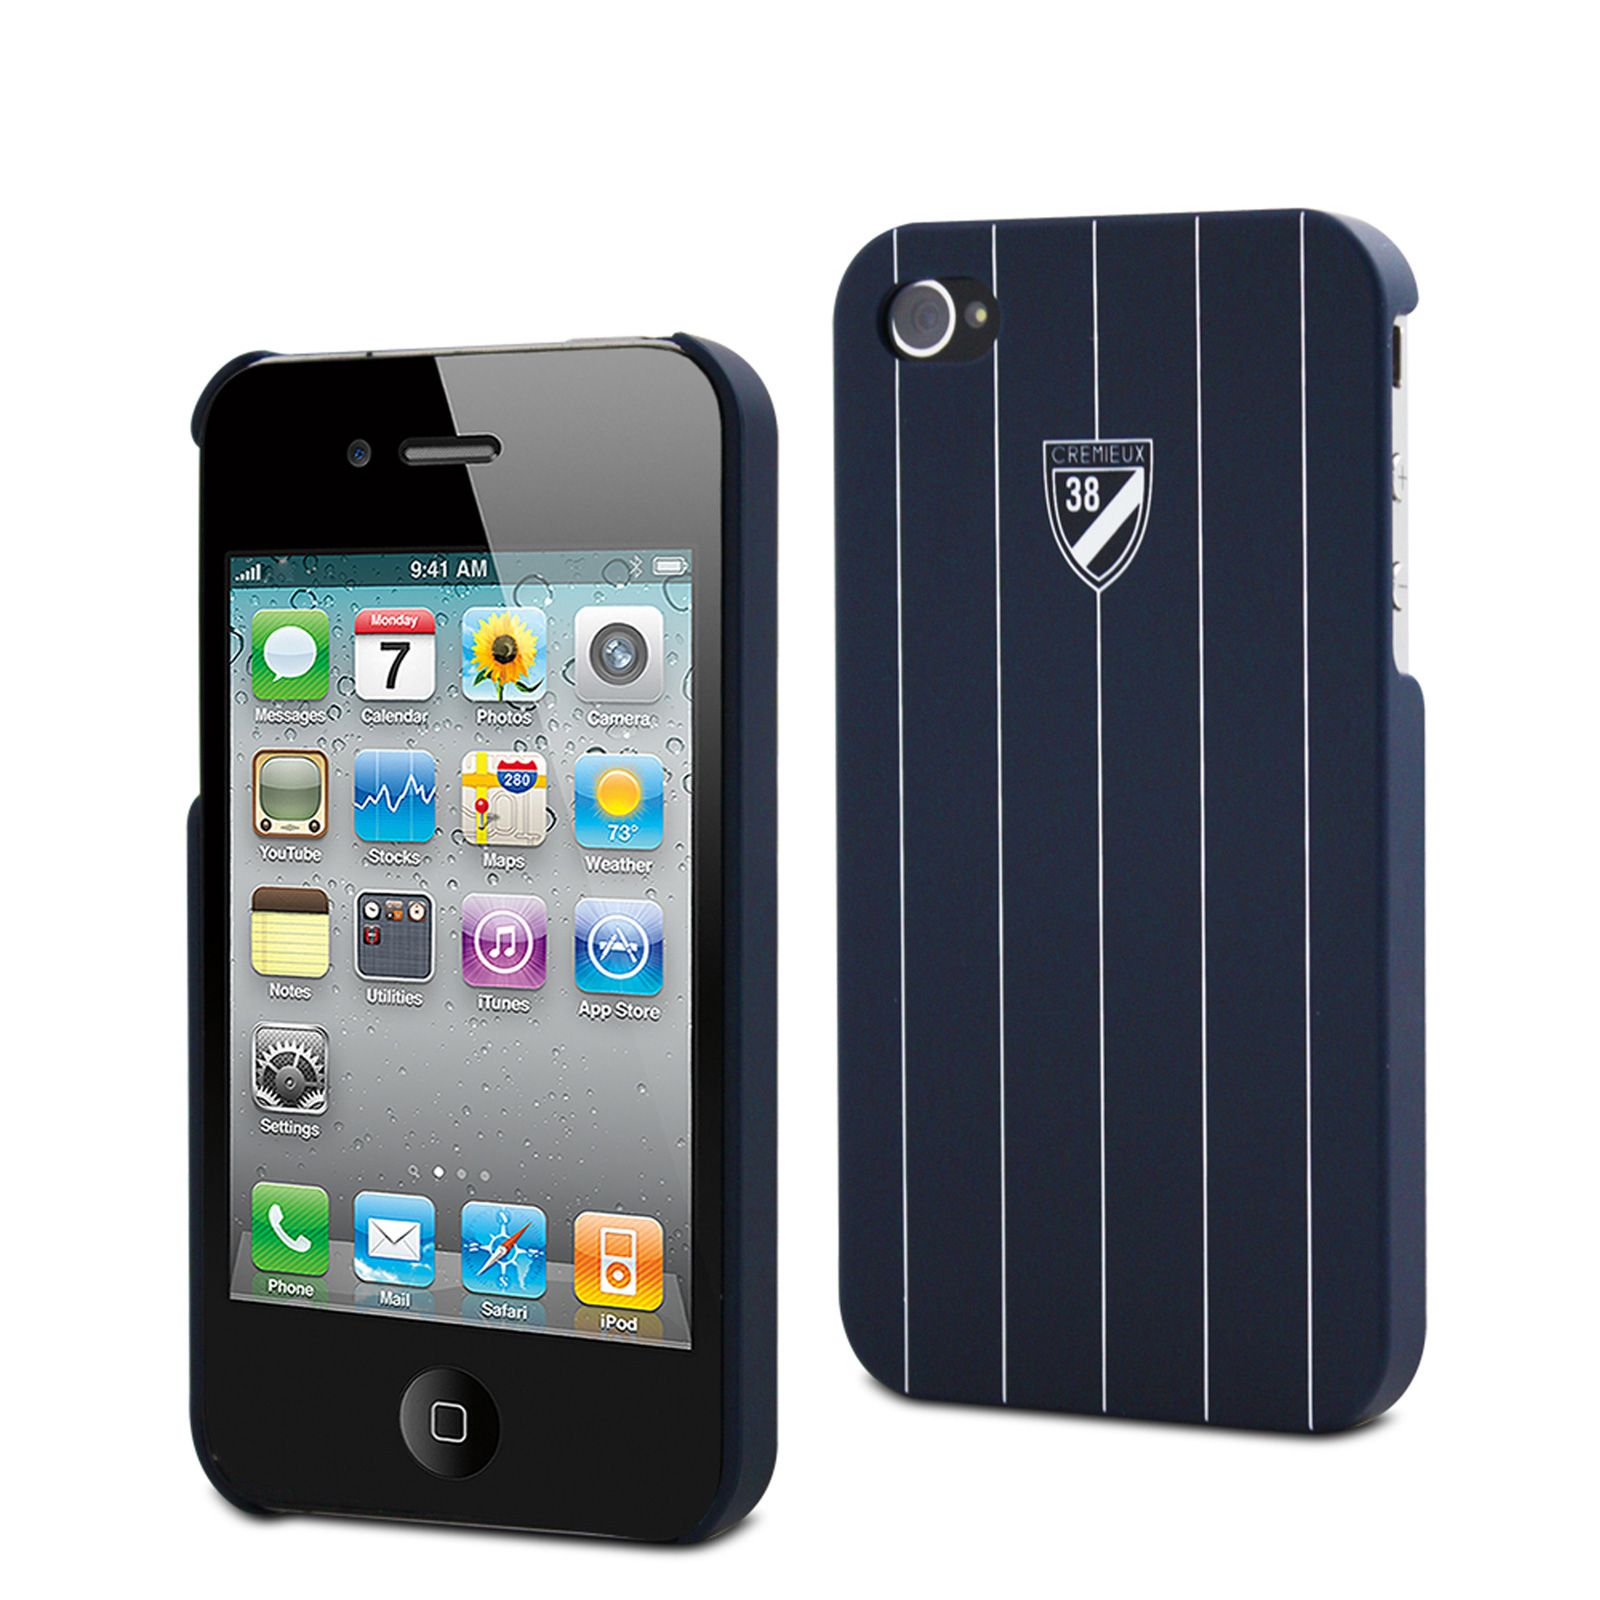 cremieux coque rigide iphone 4 4s bleu marine brandalley. Black Bedroom Furniture Sets. Home Design Ideas